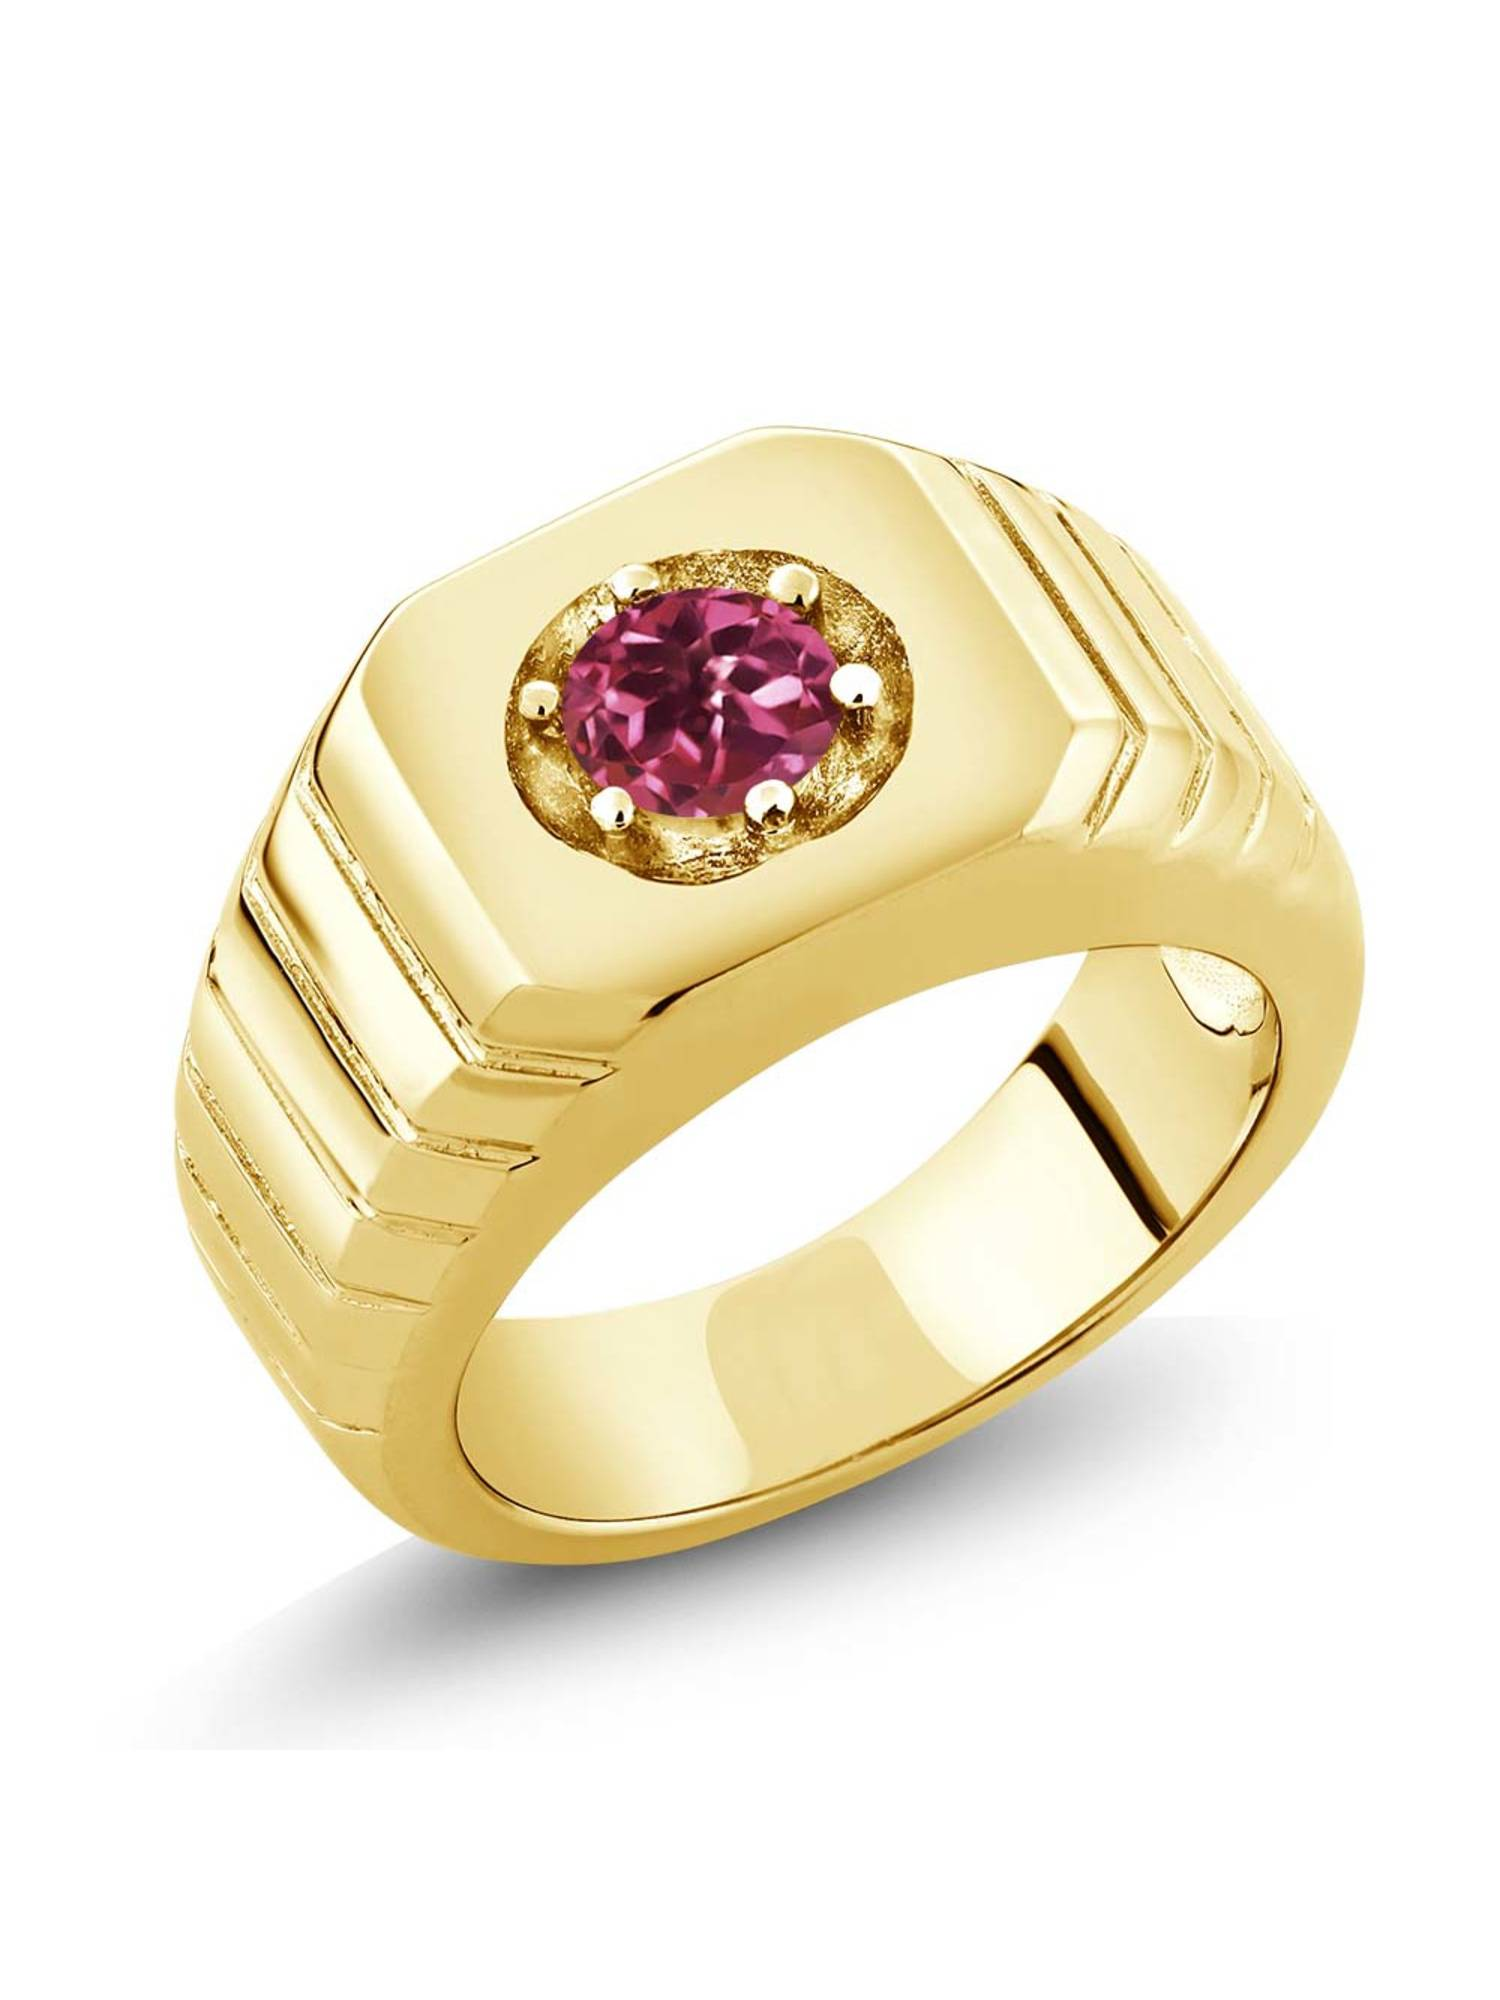 0.50 Ct Pink AA Tourmaline AA 18K Yellow Gold Plated Silver Men's Solitaire Ring by